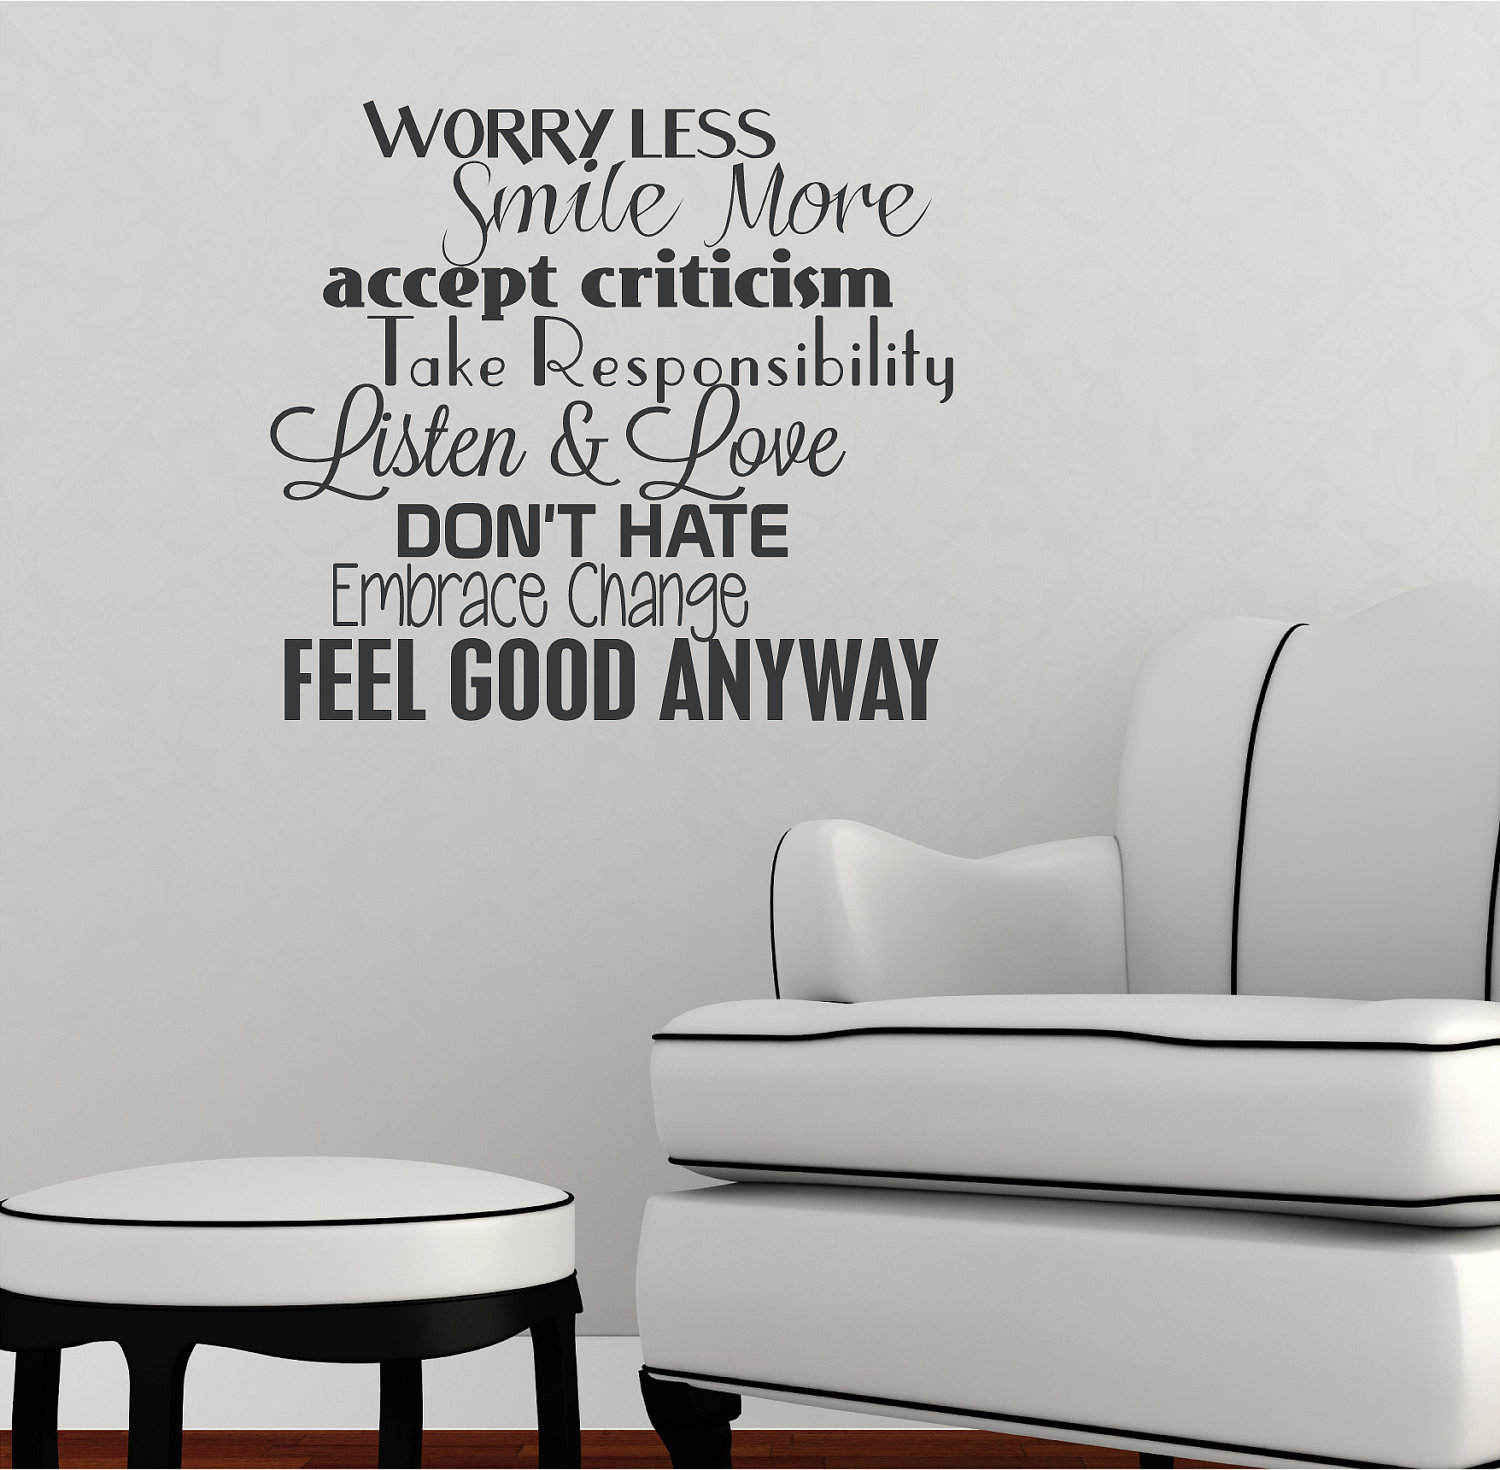 Worry Less Smile More Accept Criticism Take Responsibility Listen & Love Don't Hate Embrance Change Feel Good Anyway